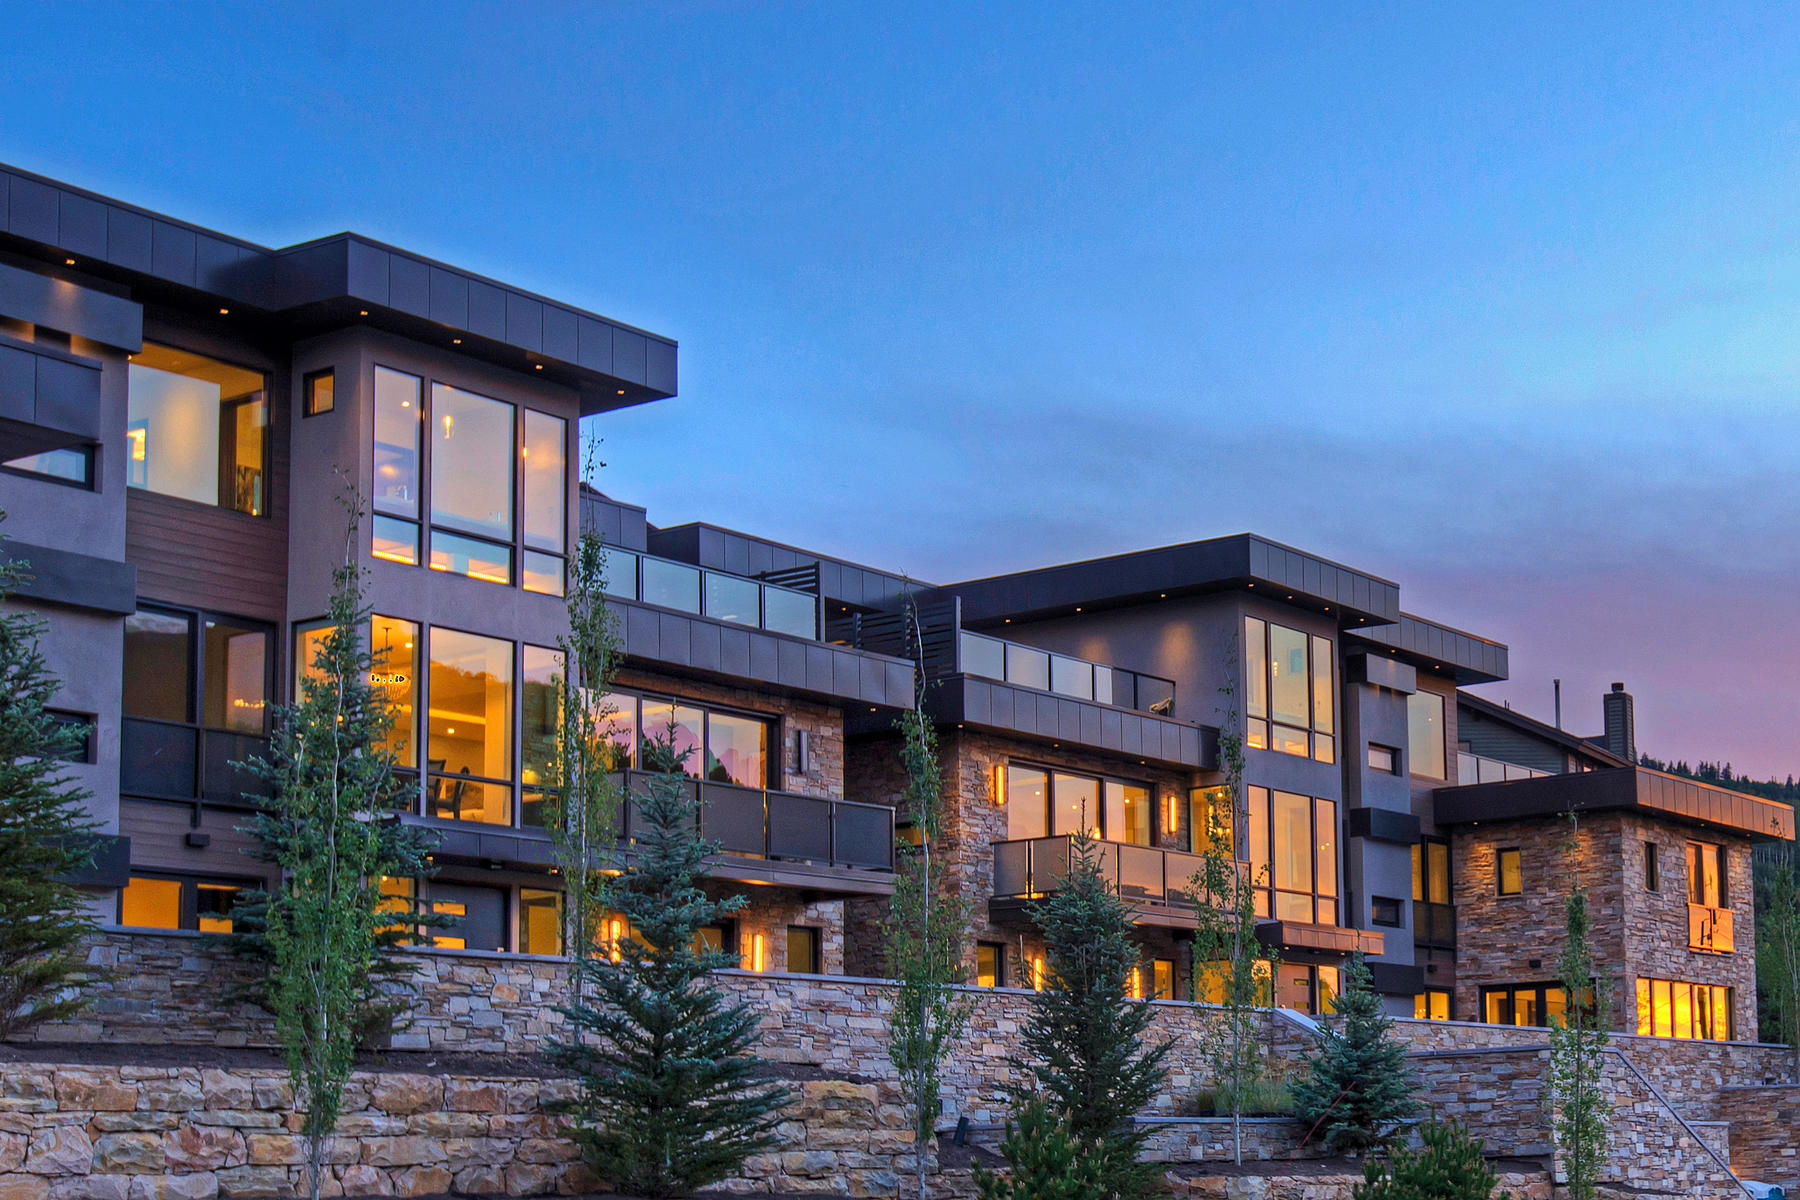 Single Family Home for Sale at New Contemporary Construction in Old Town 300 Deer Valley Lp #A Park City, Utah, 84060 United States